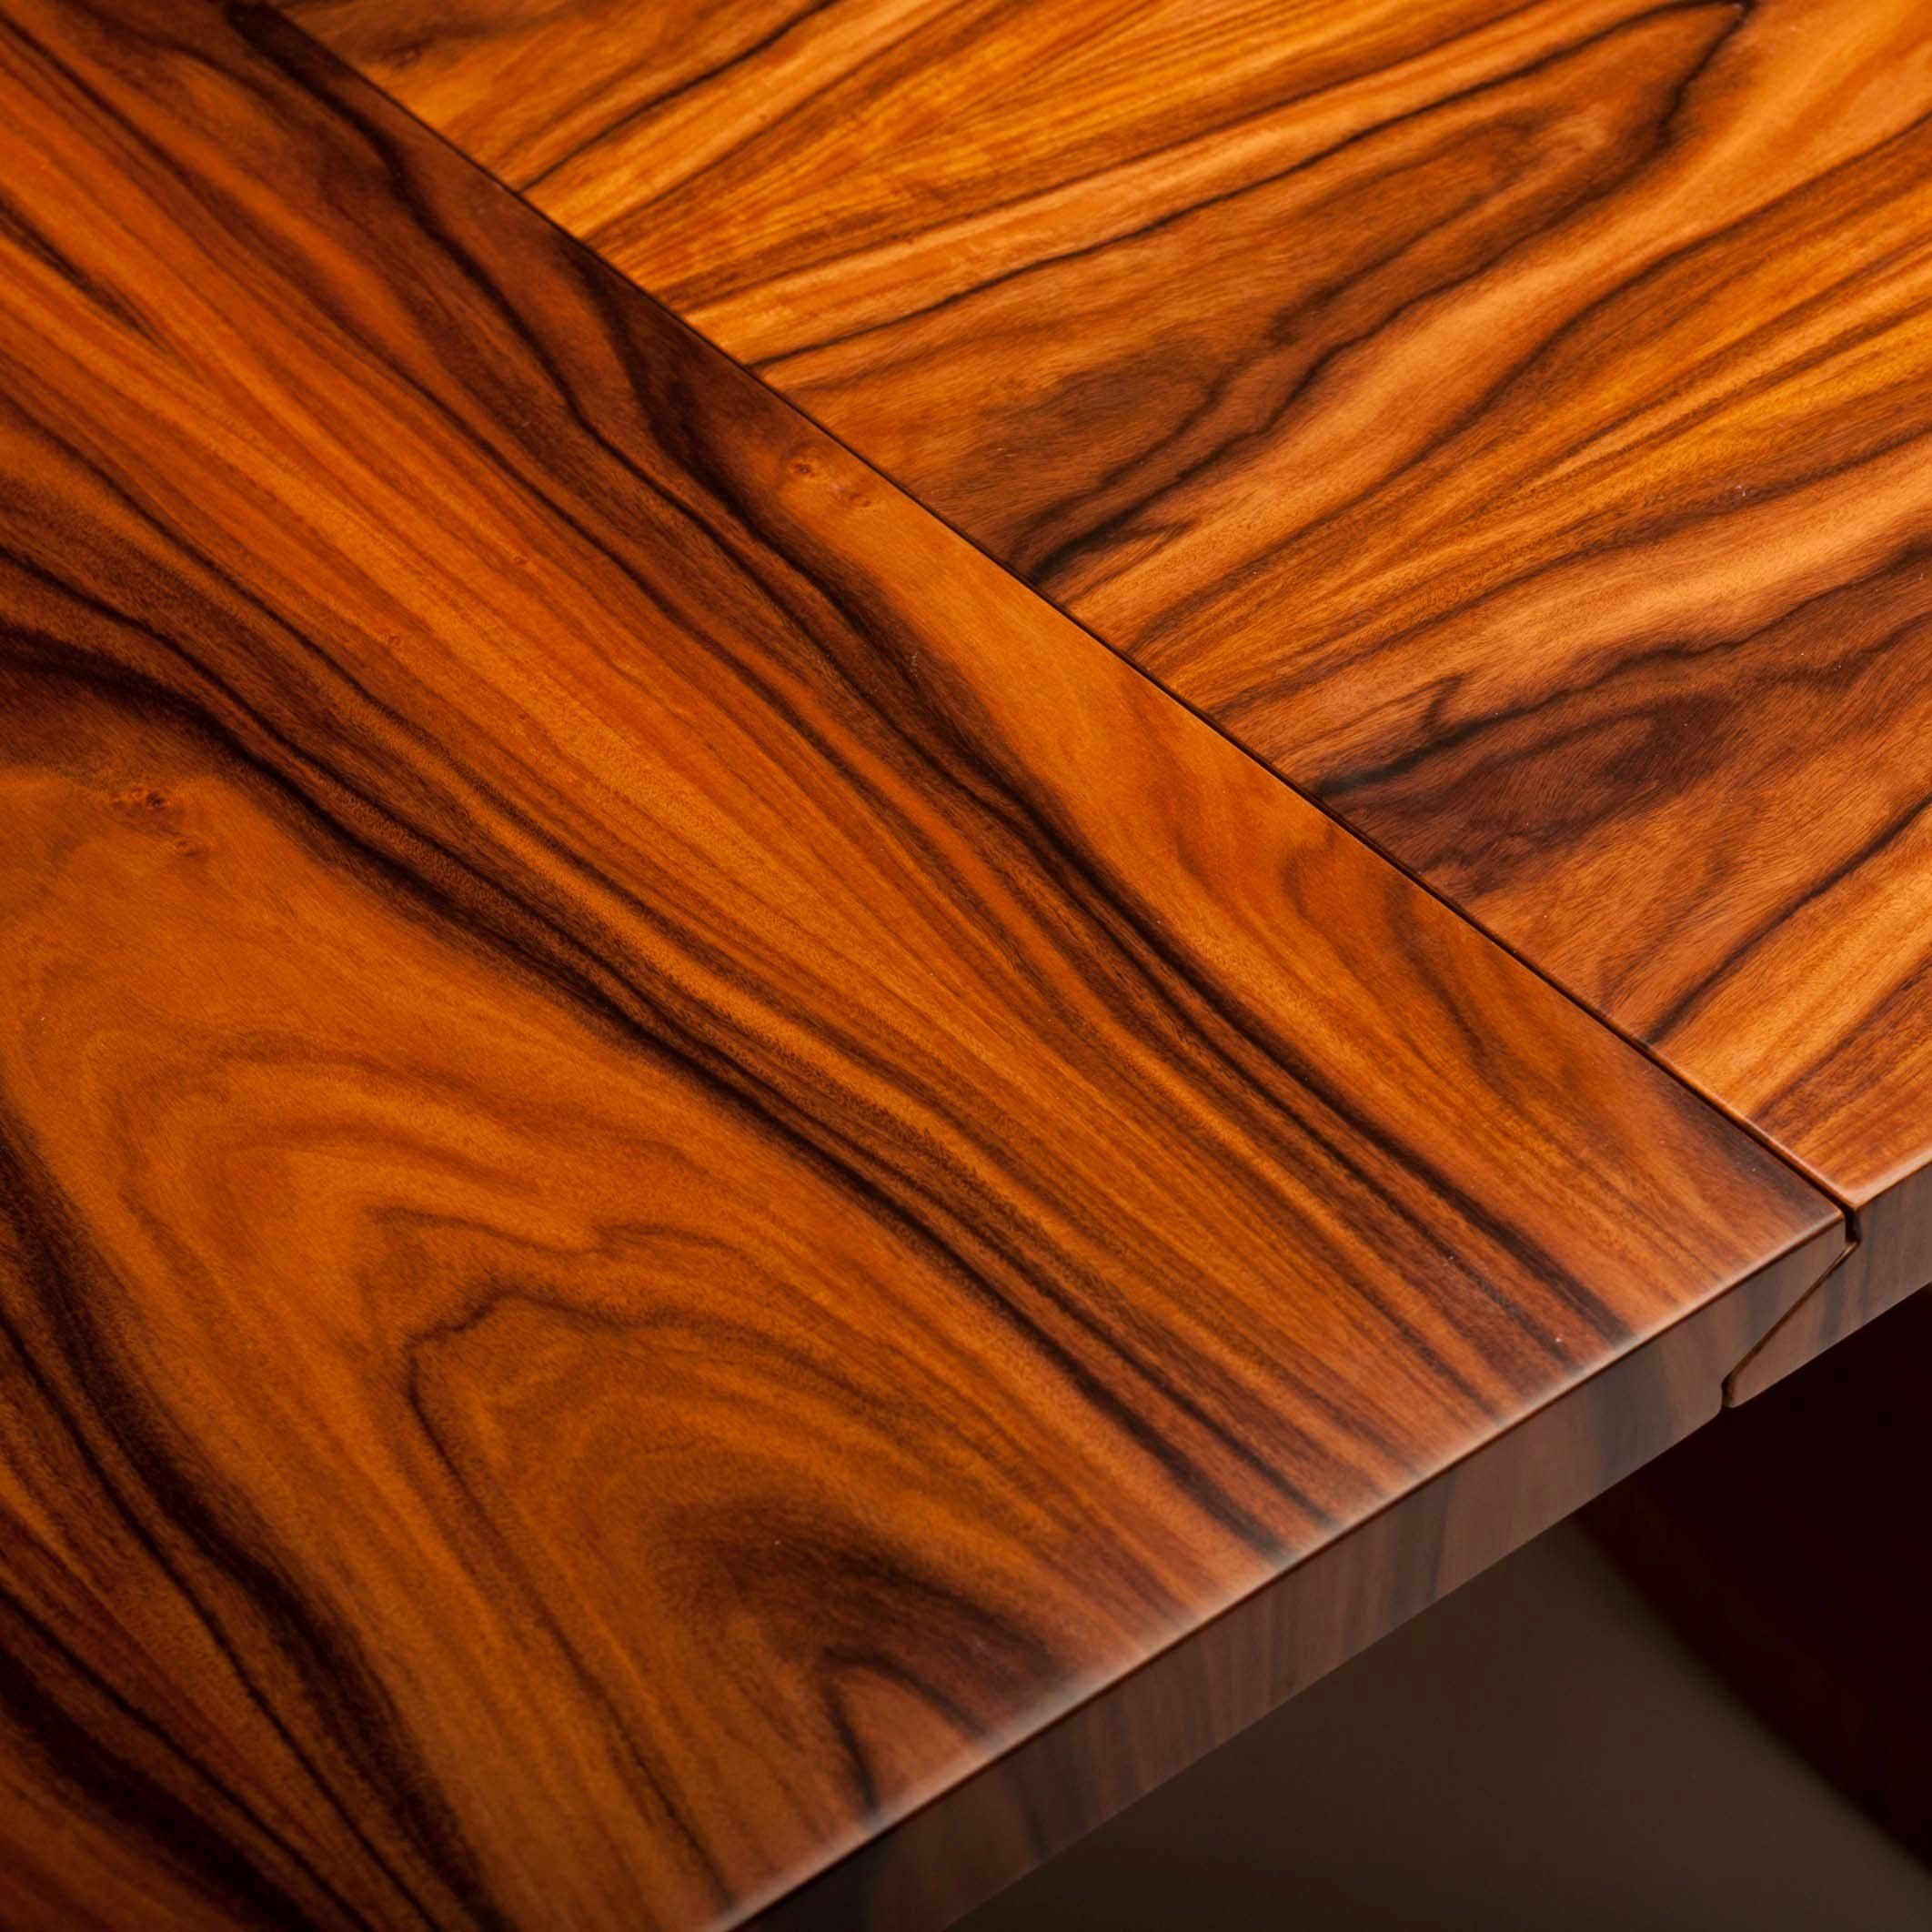 We love to be inspired by the wood grain - some of the